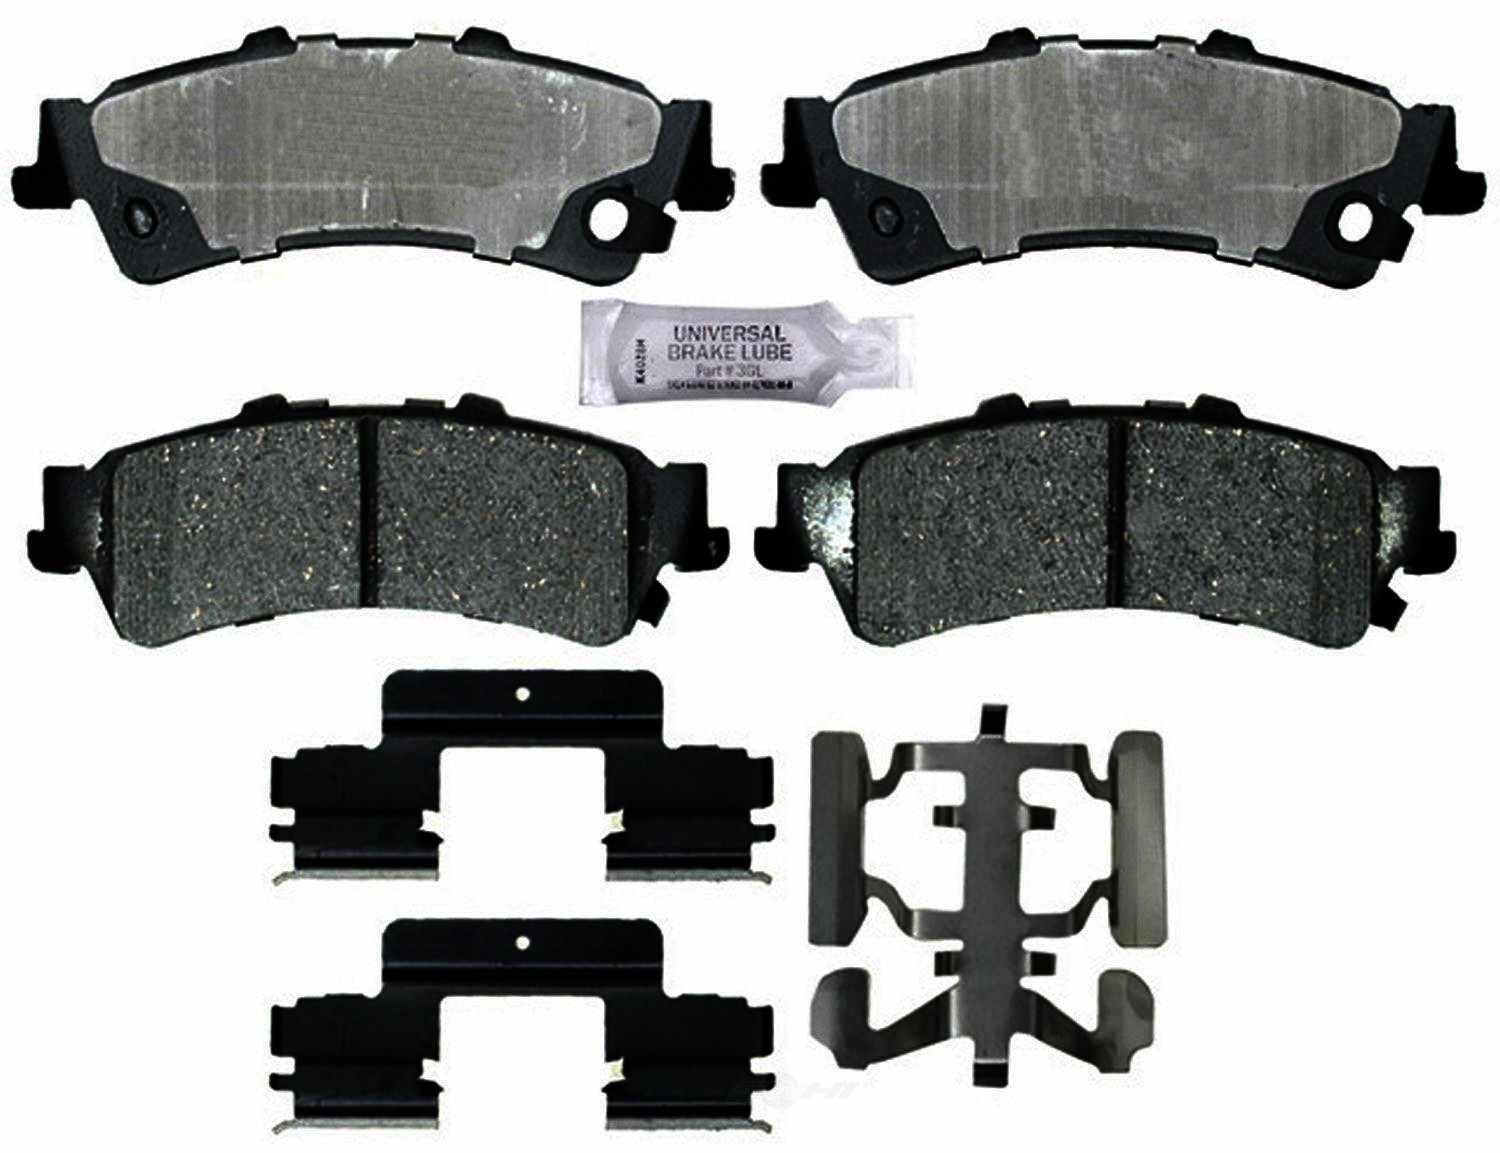 ACDELCO PROFESSIONAL BRAKES - Ceramic Disc Brake Pad (Rear) - ADU 17D792CH